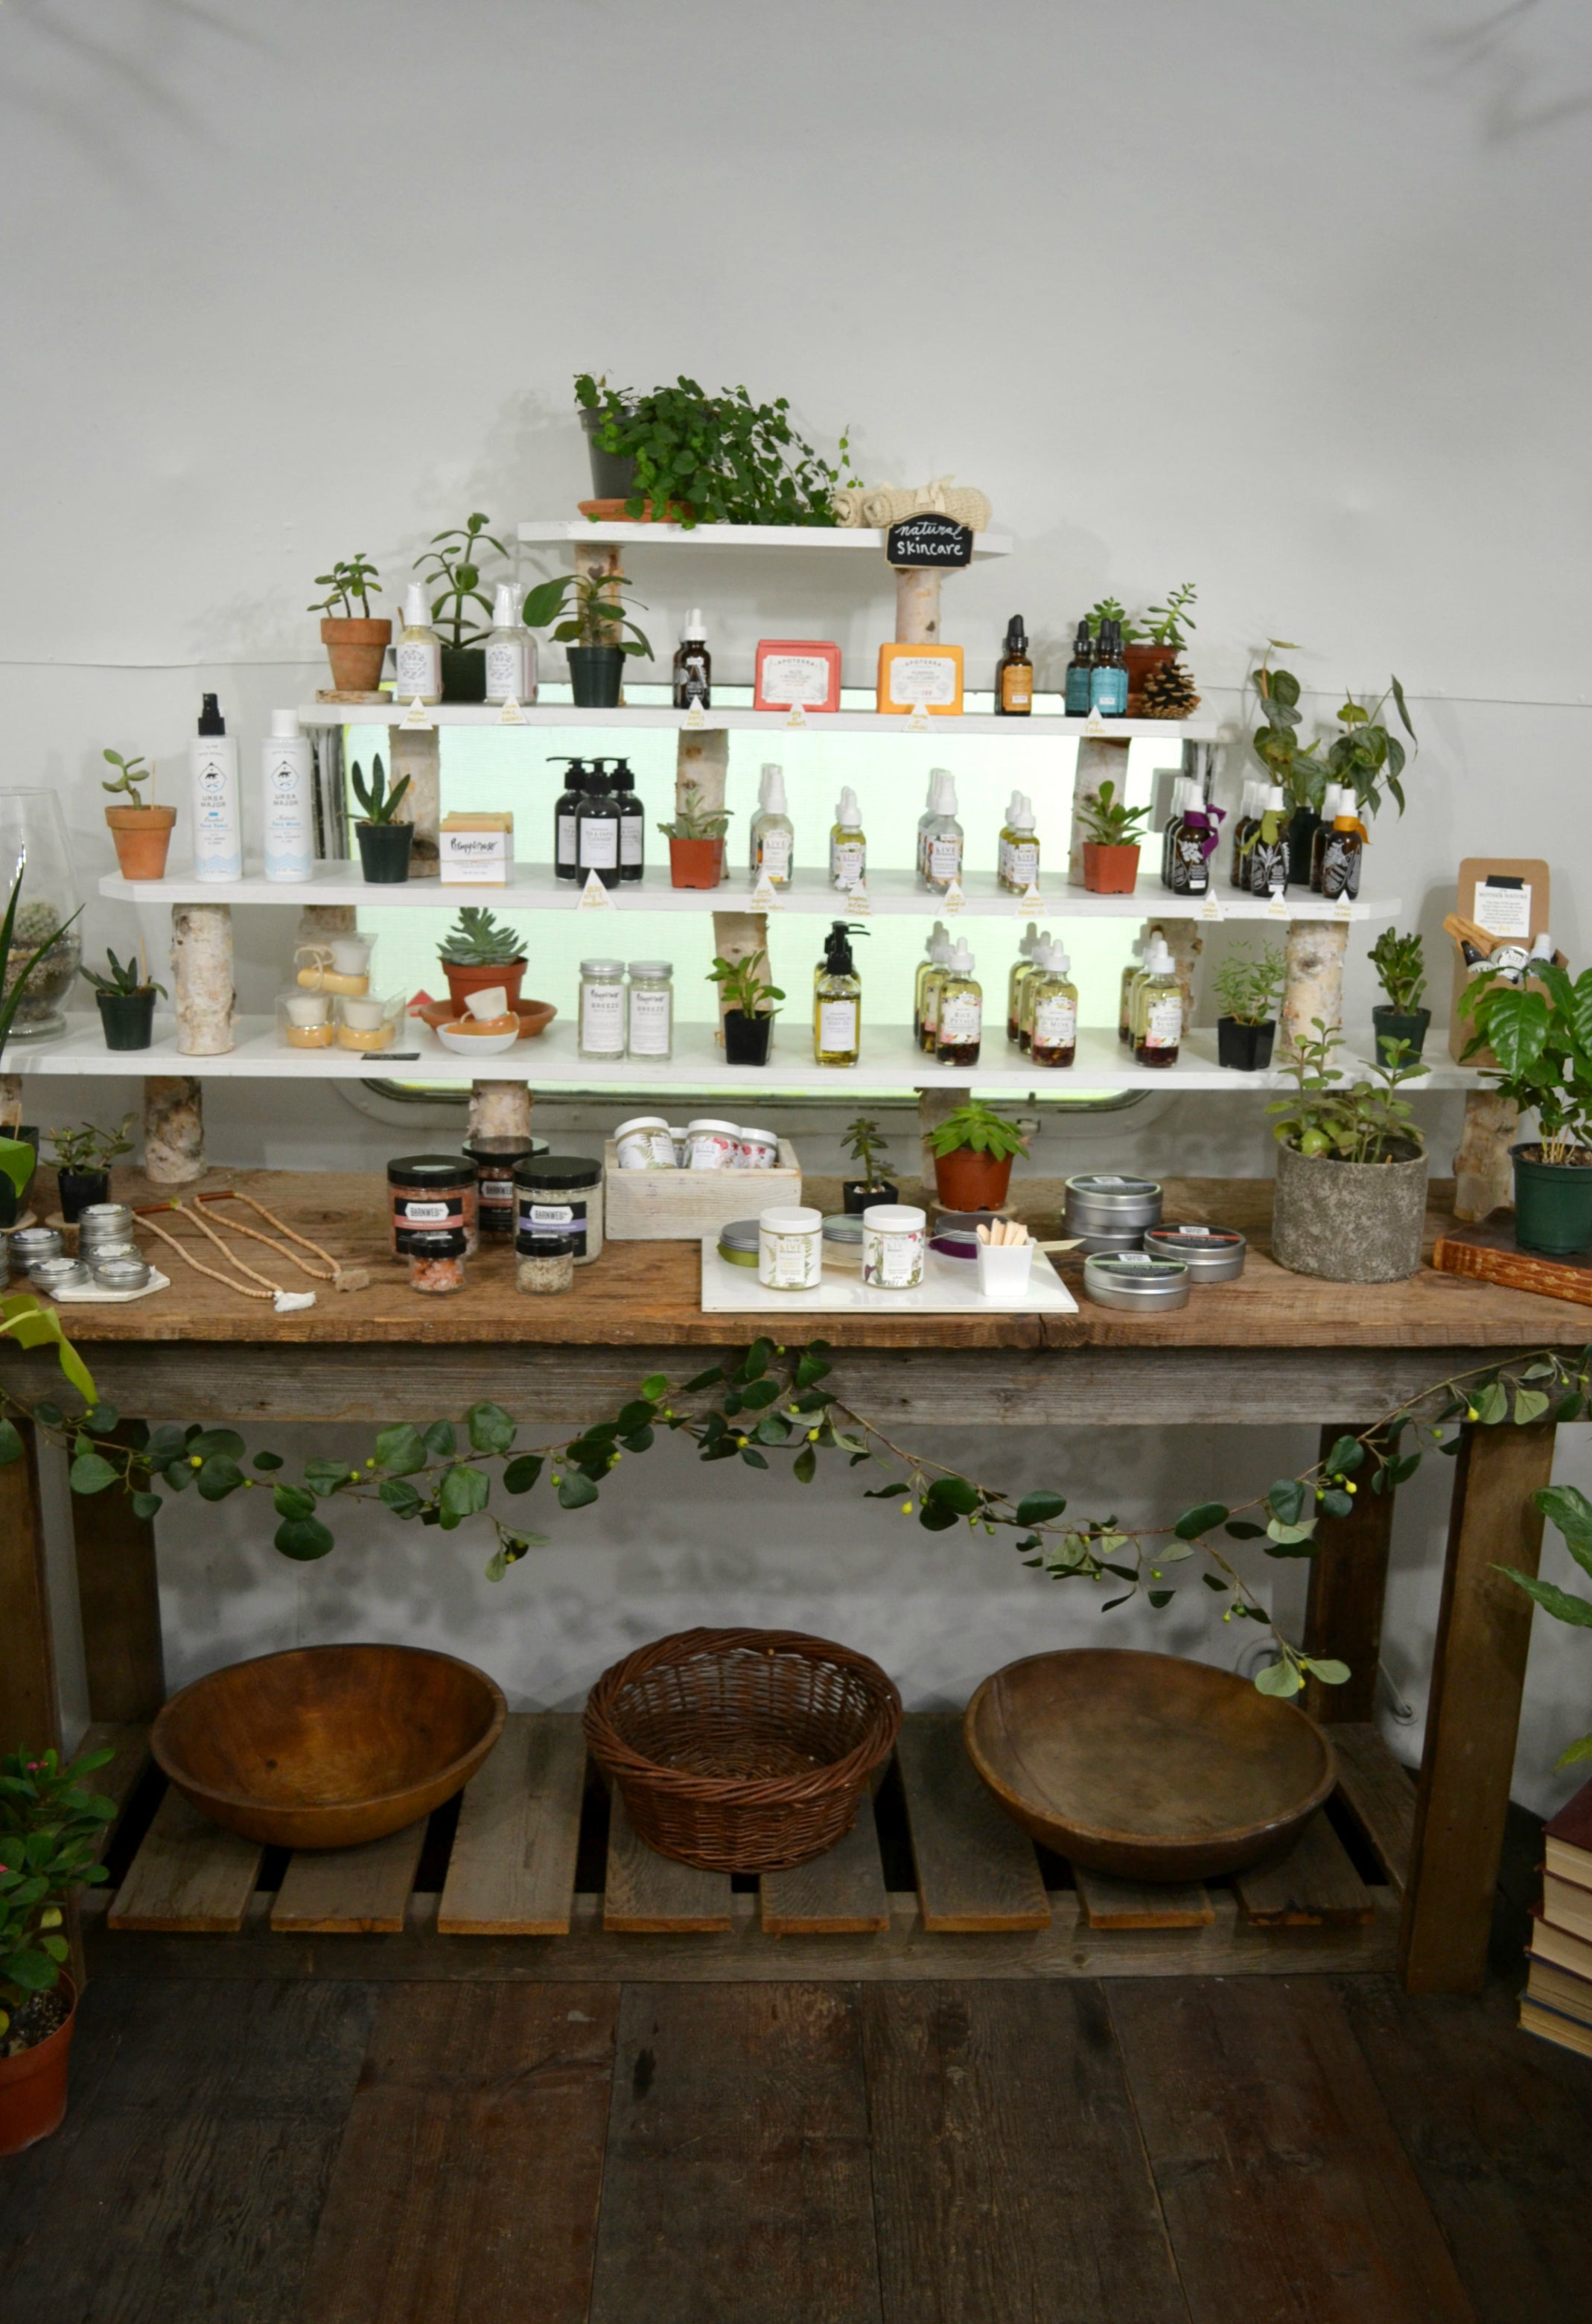 Store Tour with Menagerie - Portland's natural beauty Airstream, focused on supporting natural, locally made products.